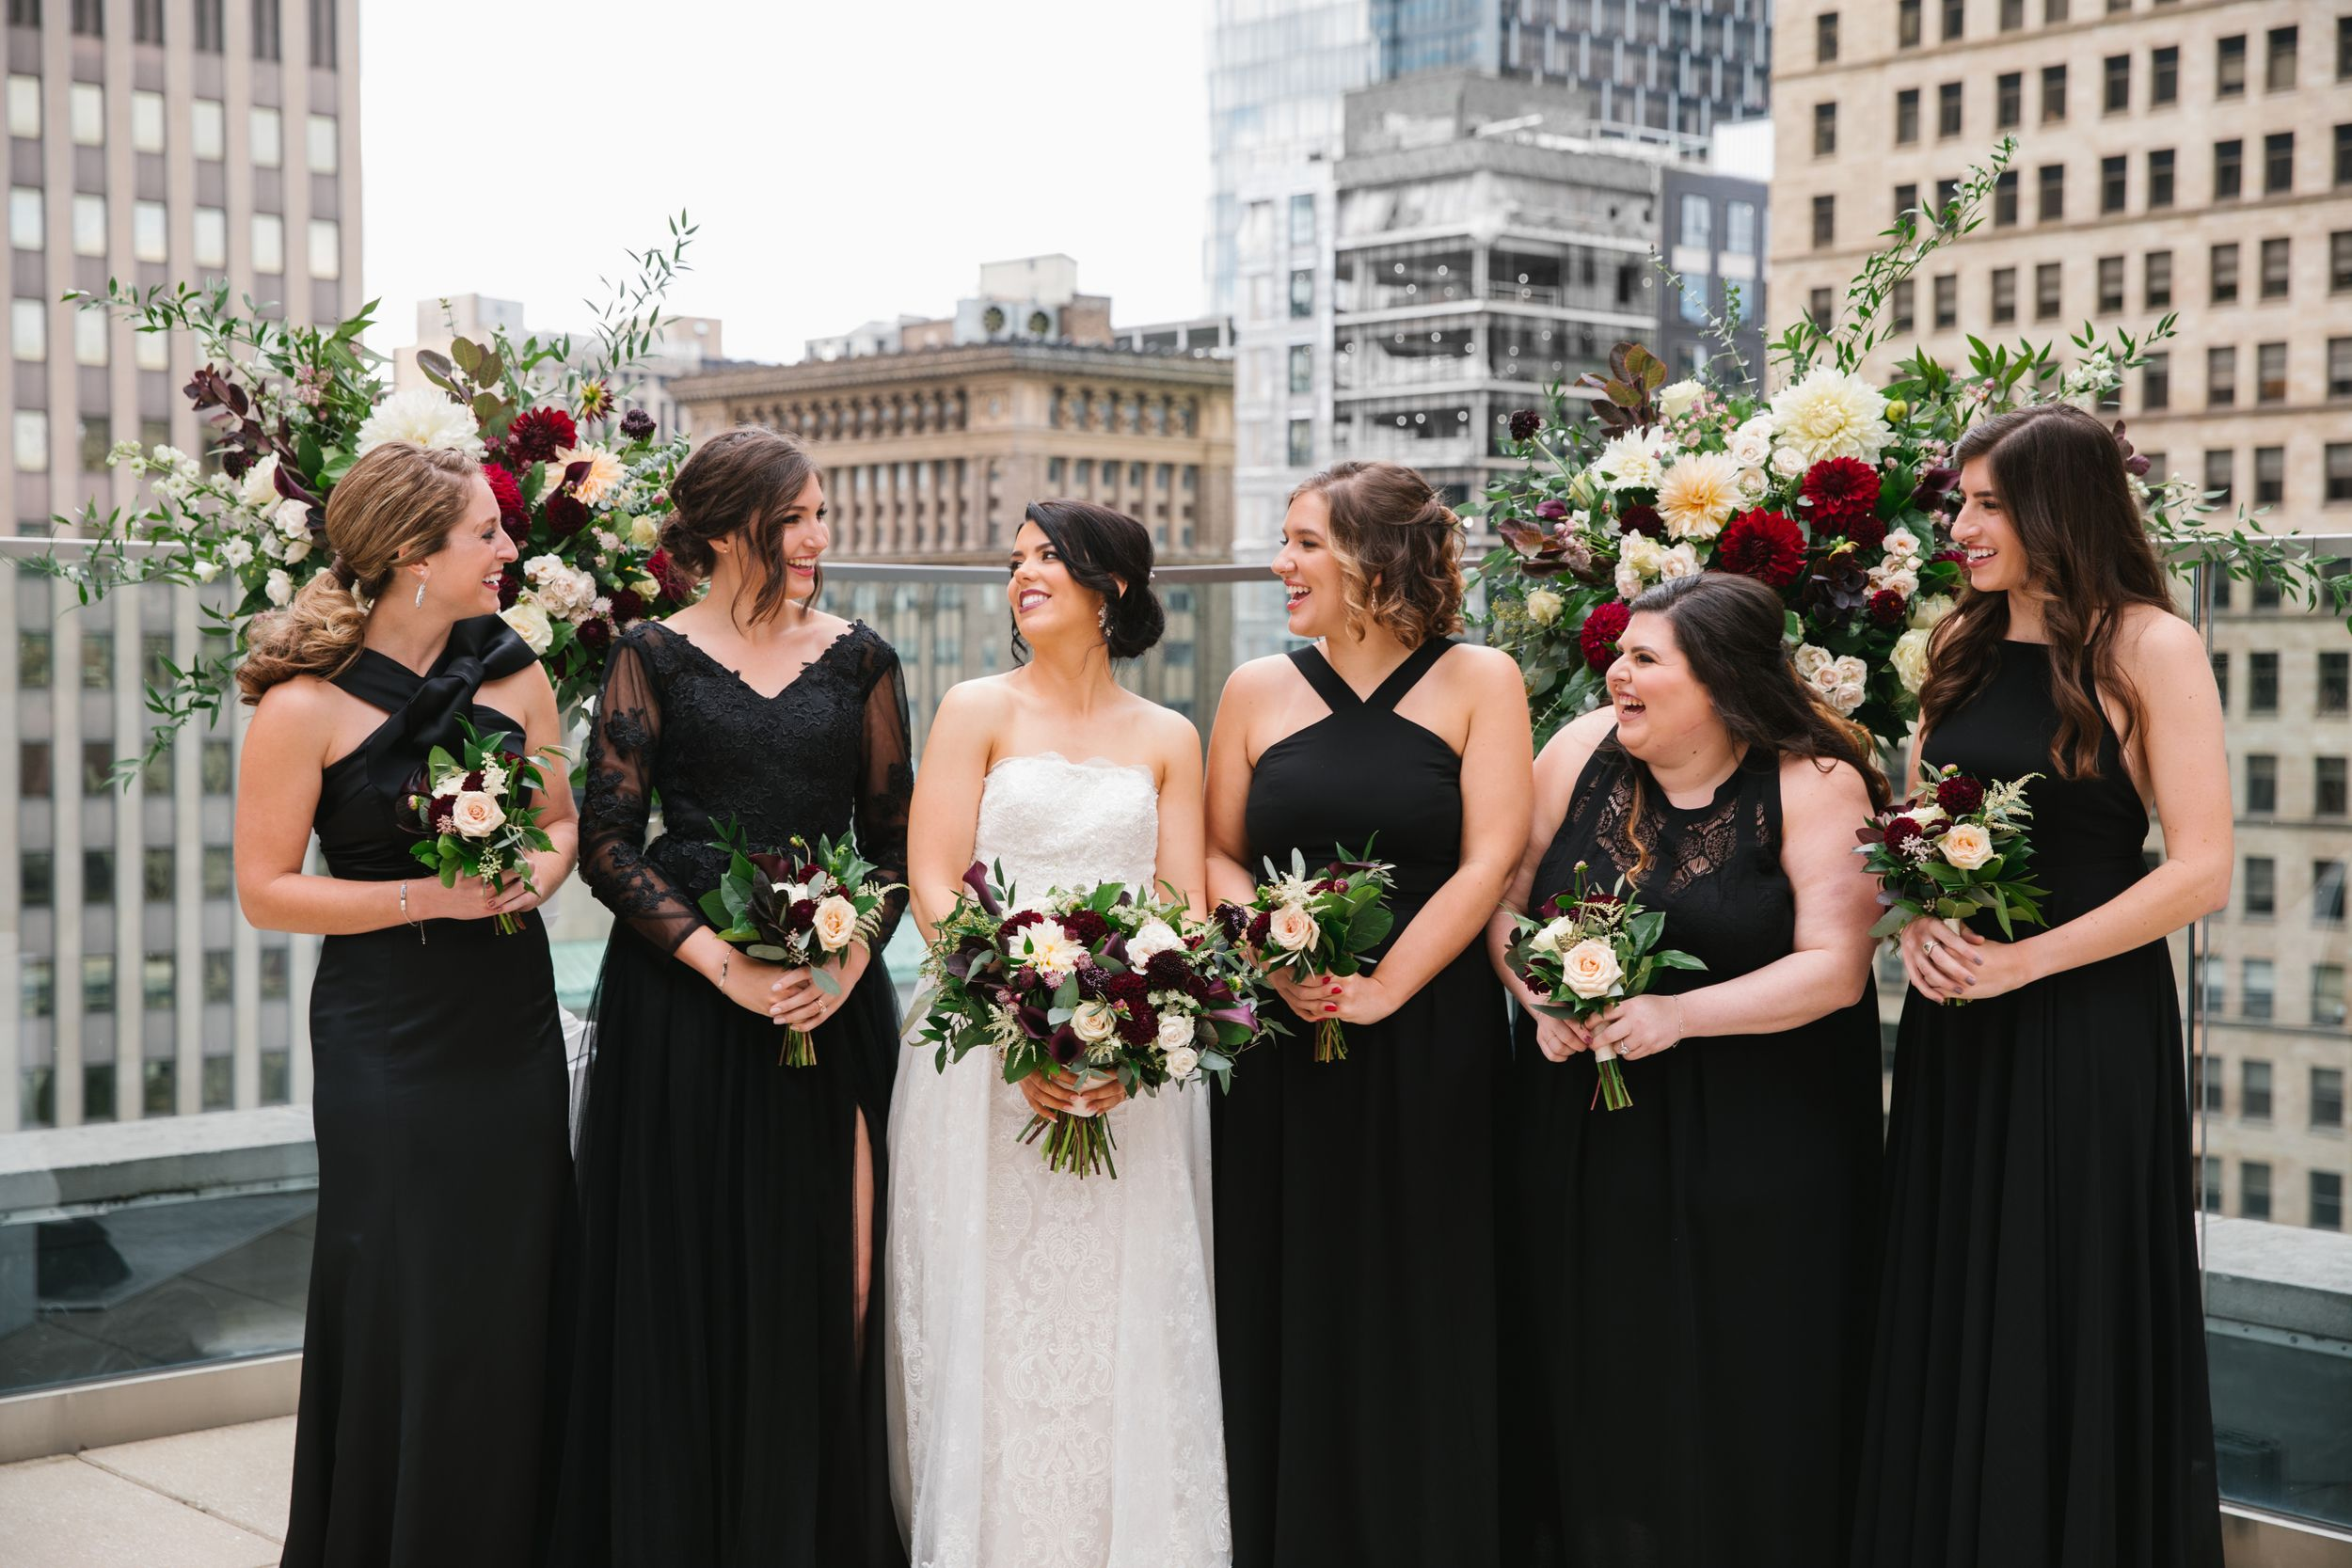 bride and bridesmaids in black dresses holding burgundy bouquets and laughing with city scape in the background